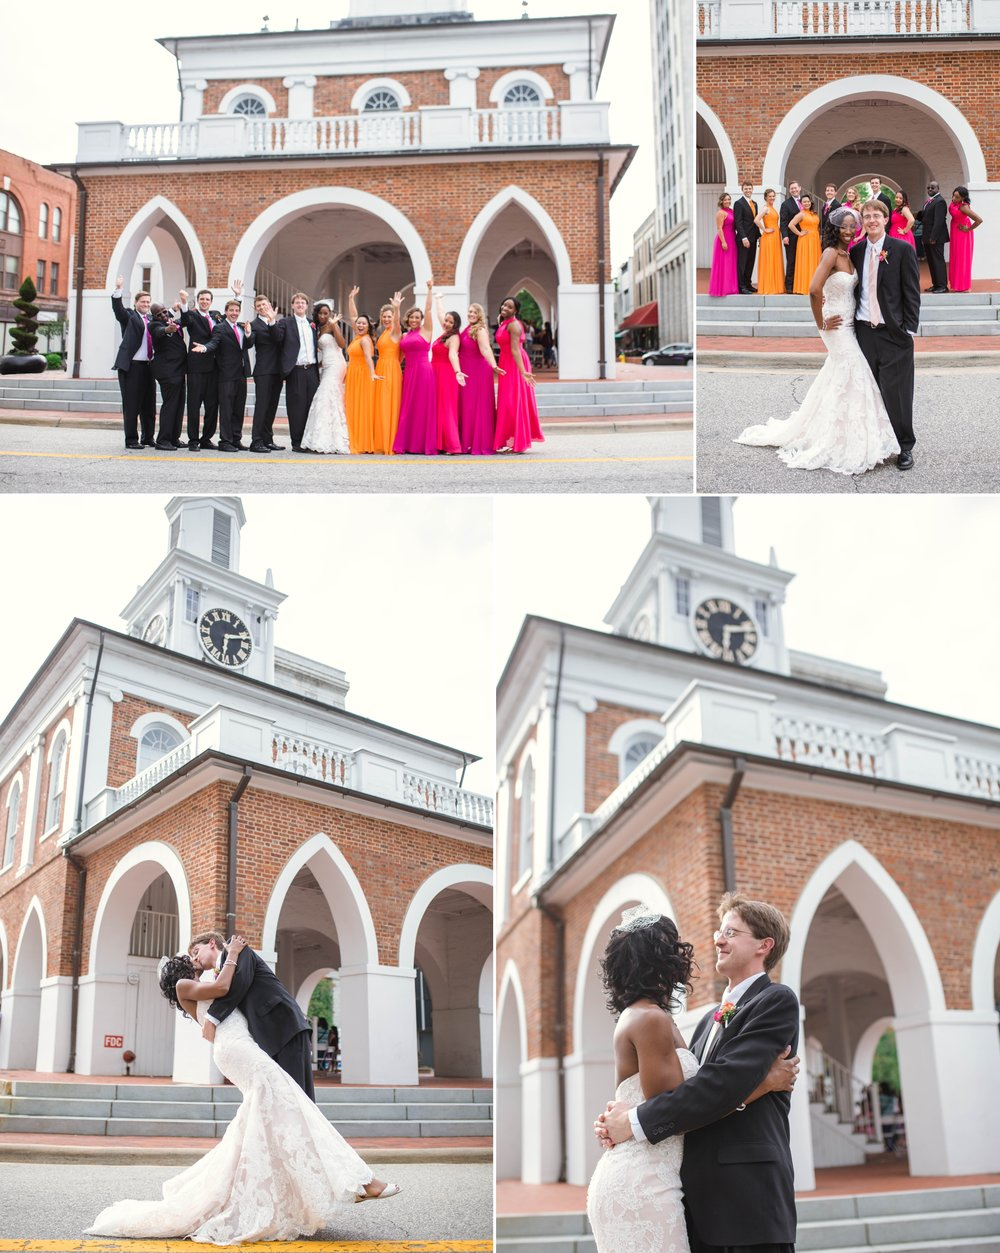 Scott + Kady Ann - Wedding Photography at St Andrews United Methodist Church - Fayetteville North Carolina Photographer